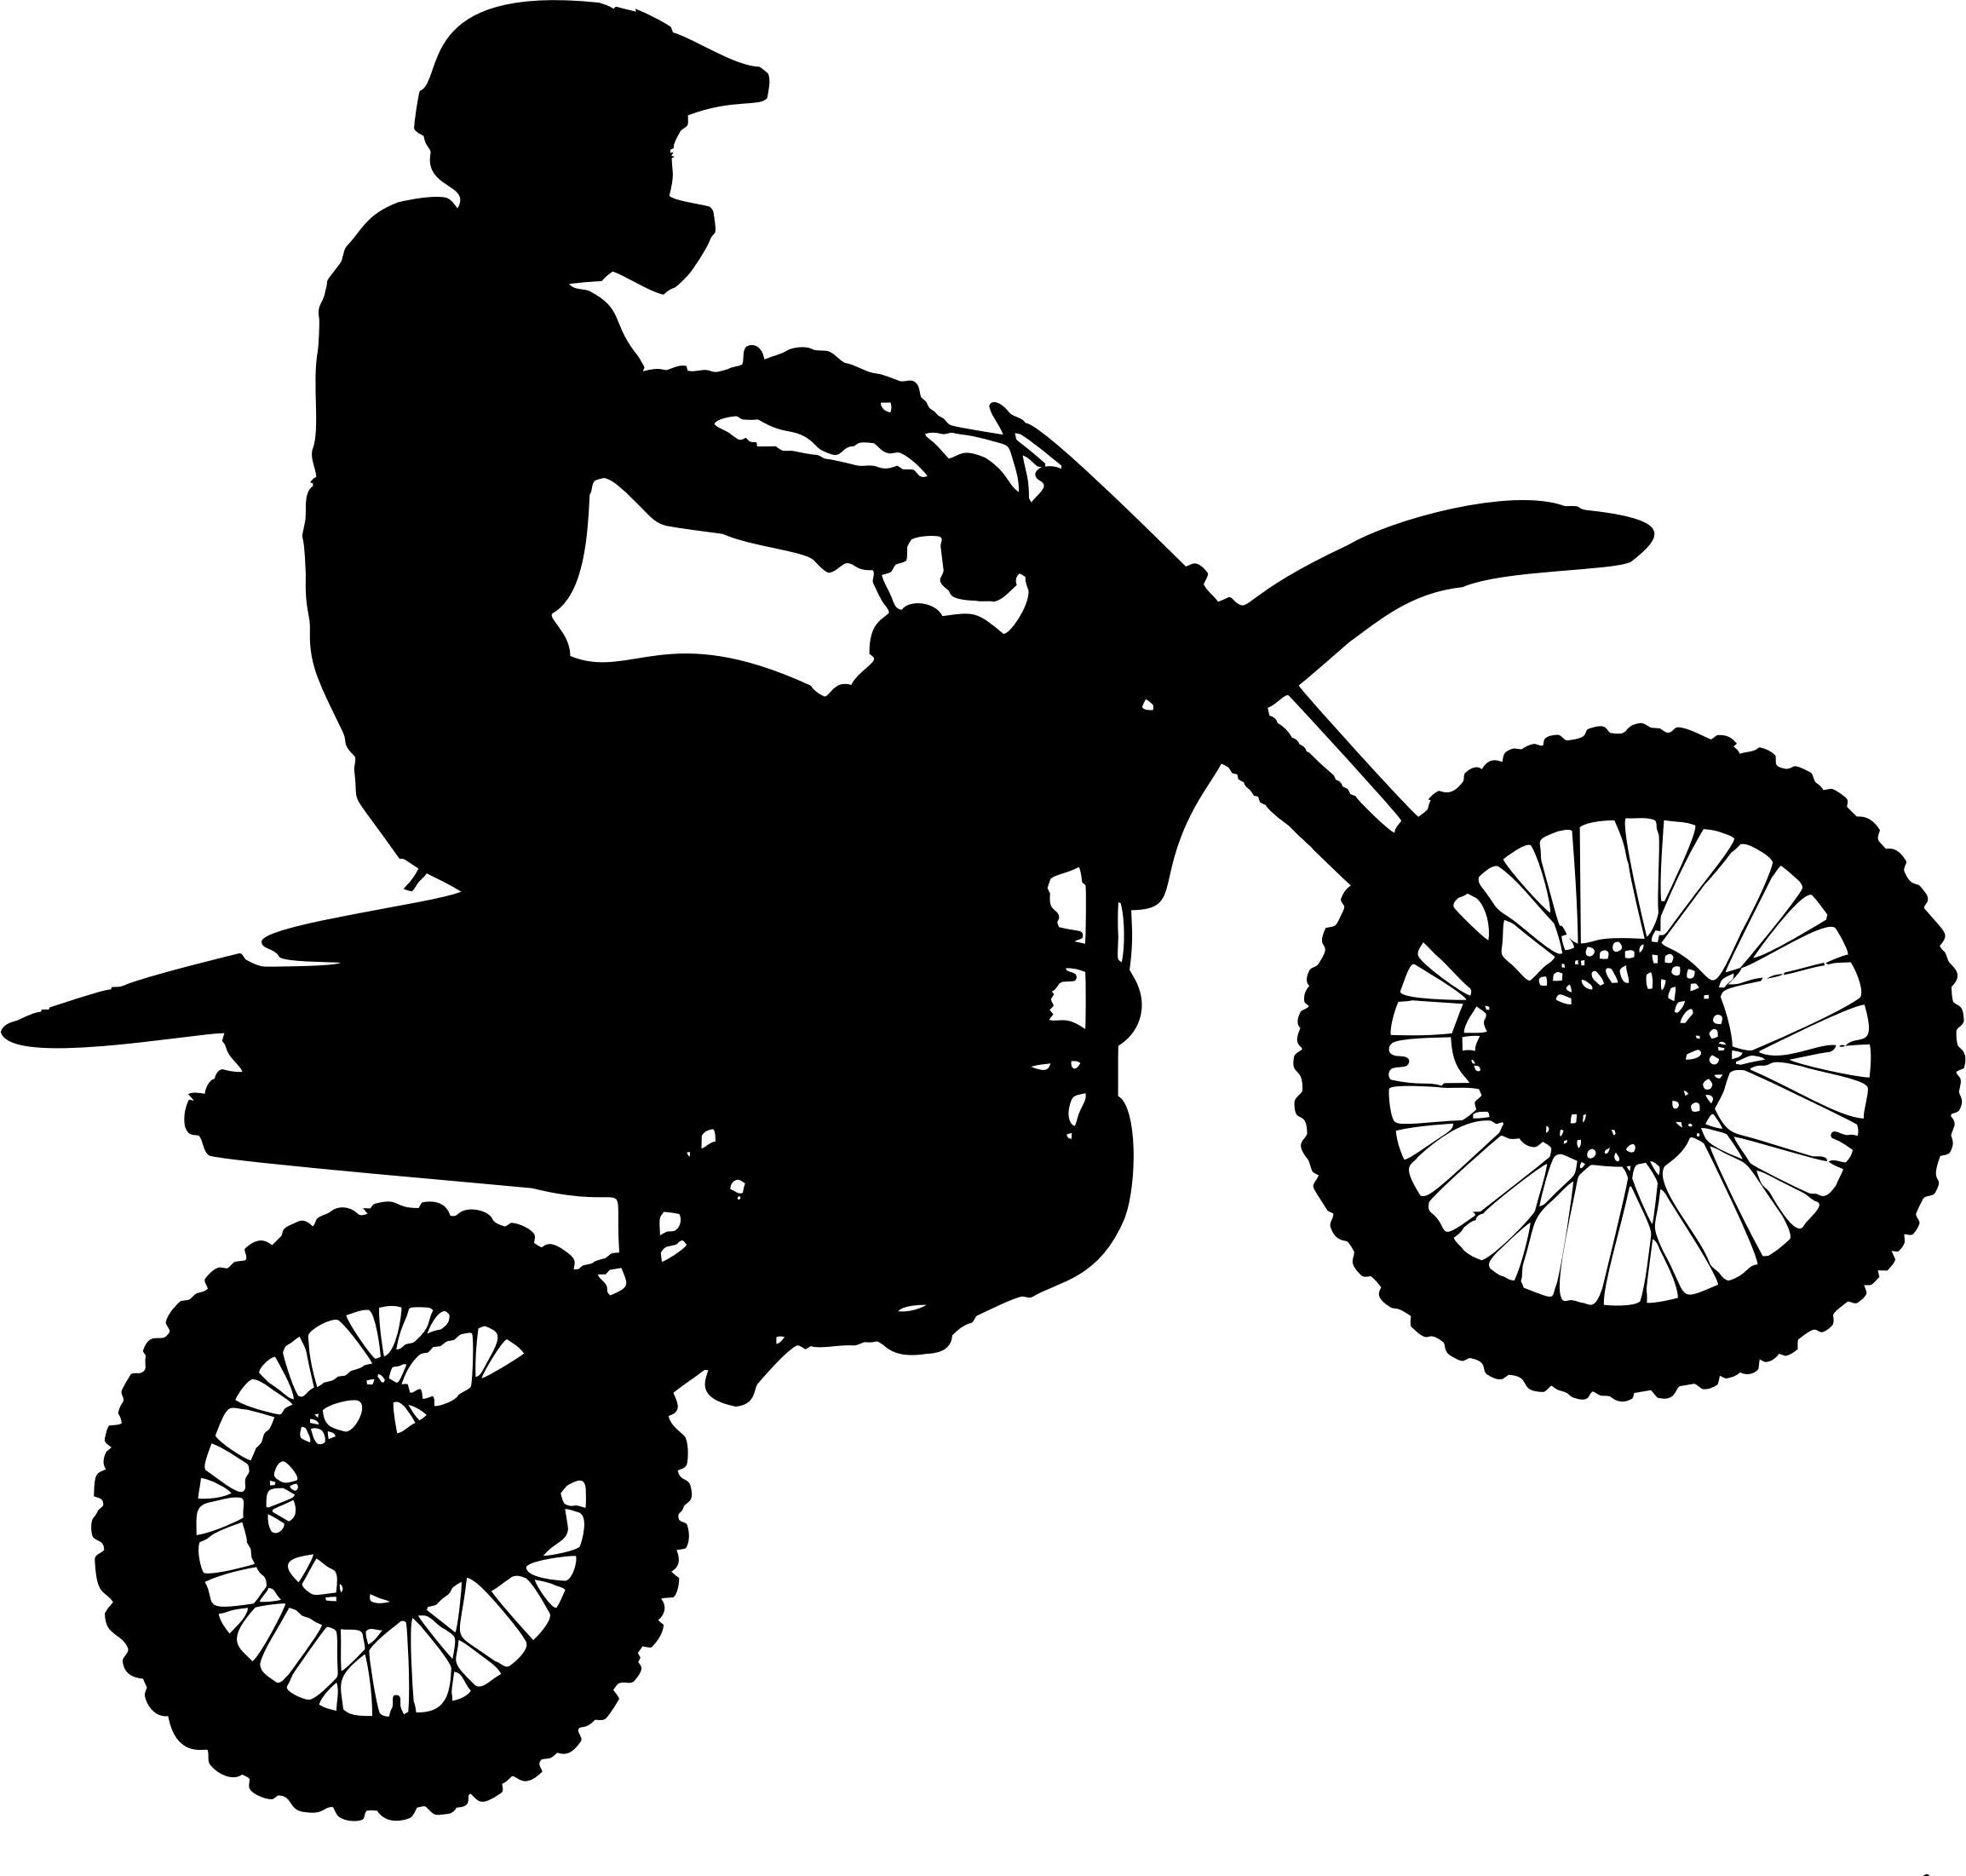 dirt bike silhouette 6 motocross silhouette png transparent onlygfxcom bike dirt silhouette